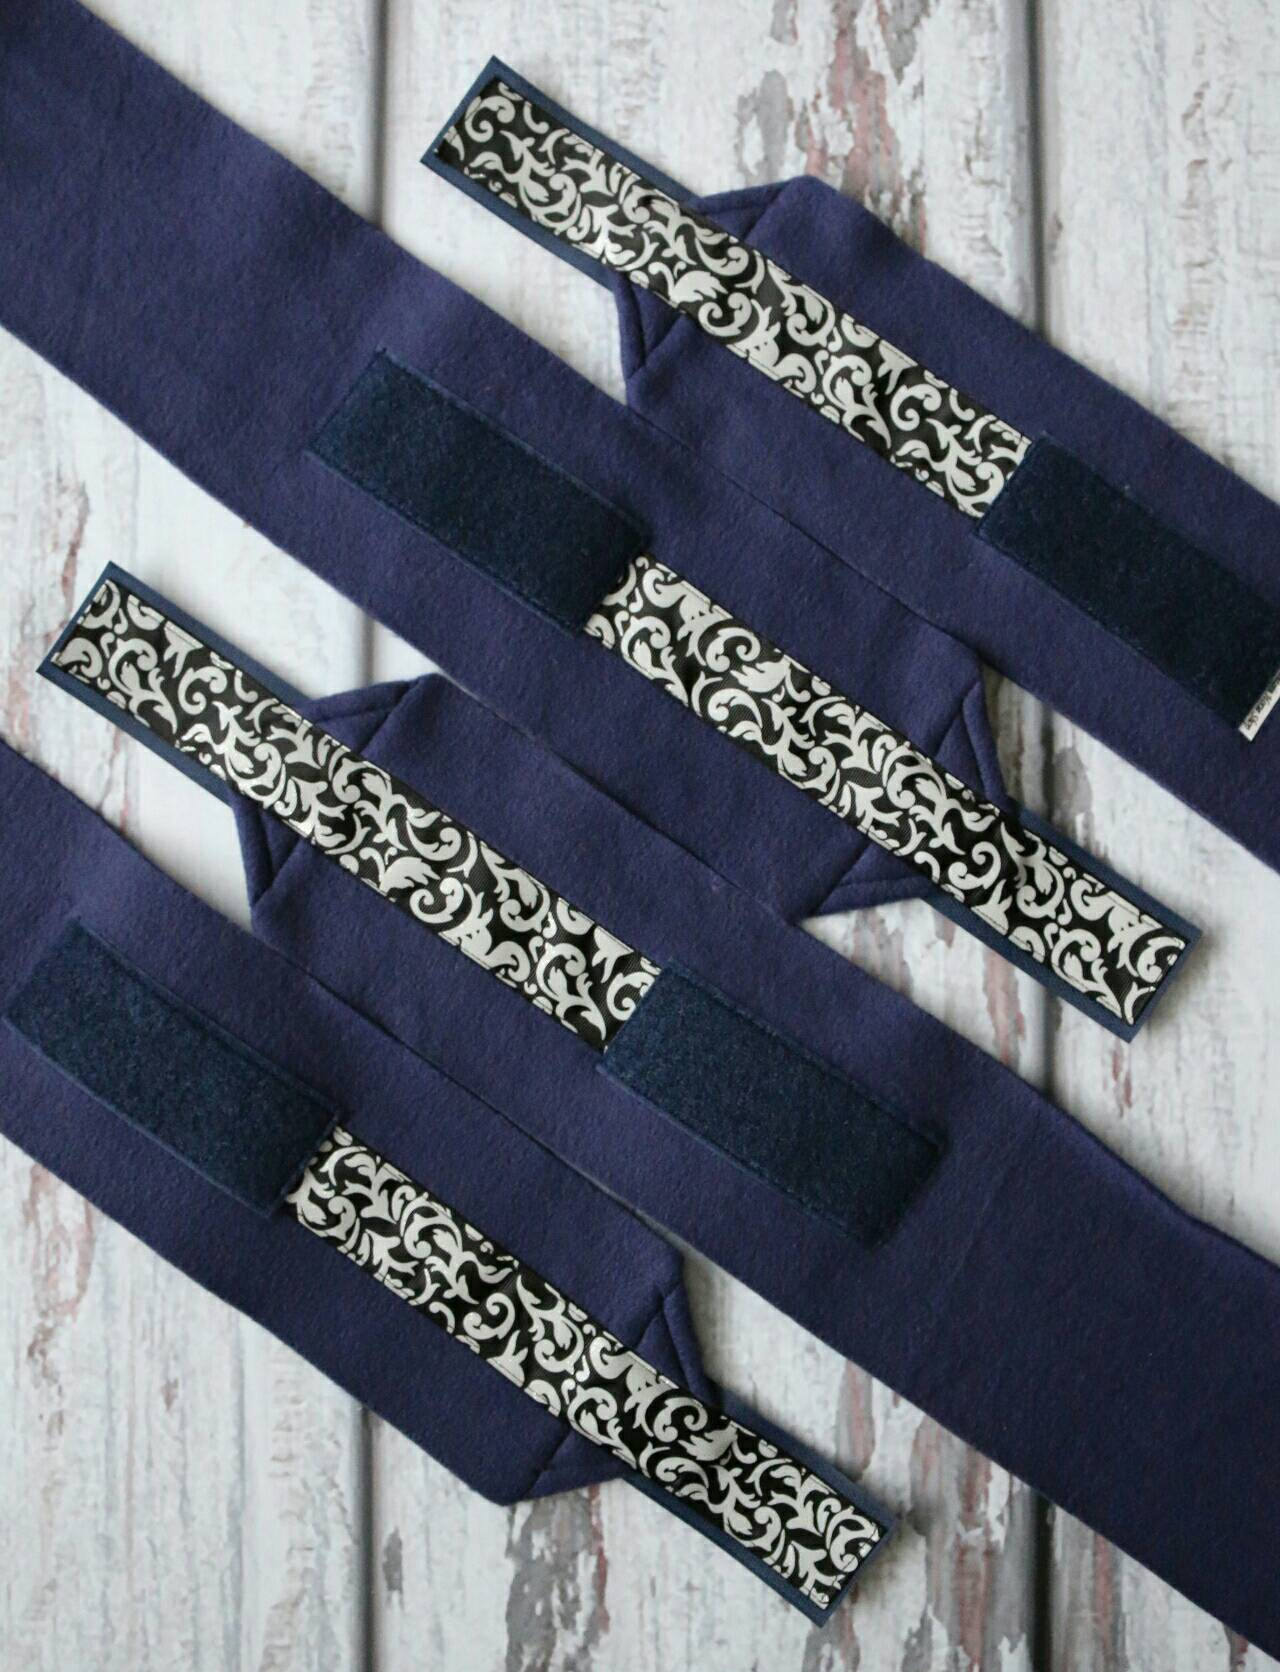 Polo Wraps / Stable Wraps, Set of 4 OR Set of 2, Standard Size Damask Navy Blue